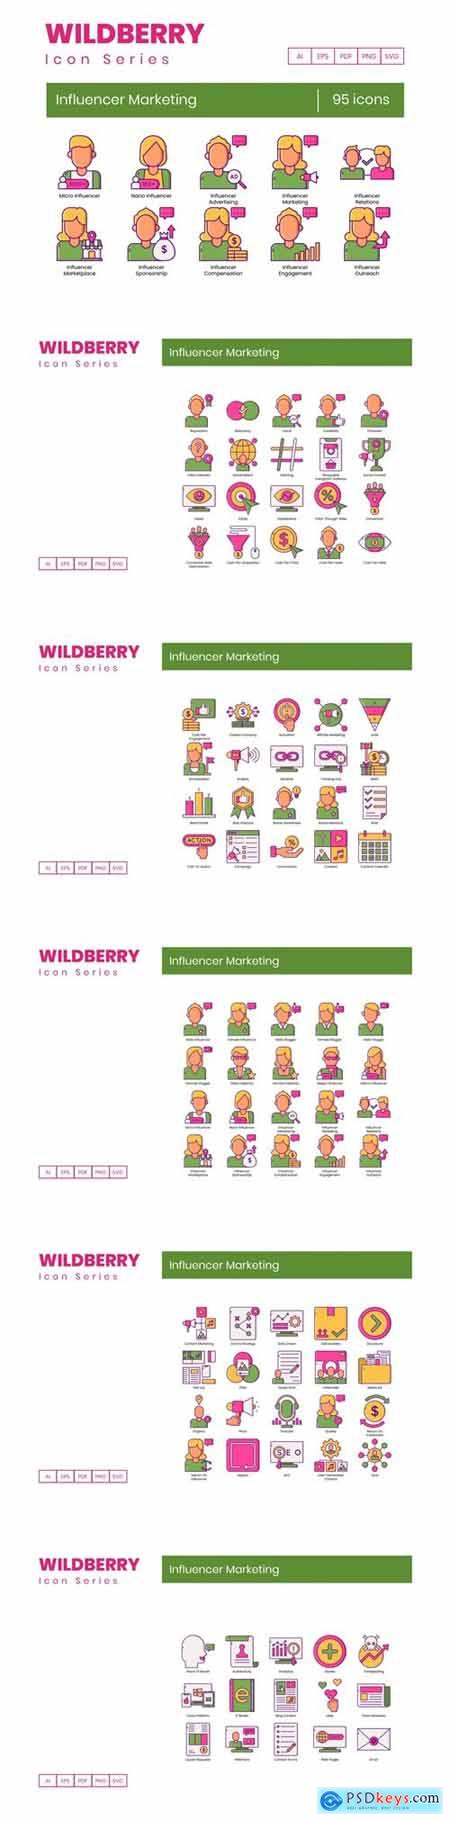 95 Influencer Marketing Icons Wildberry Series